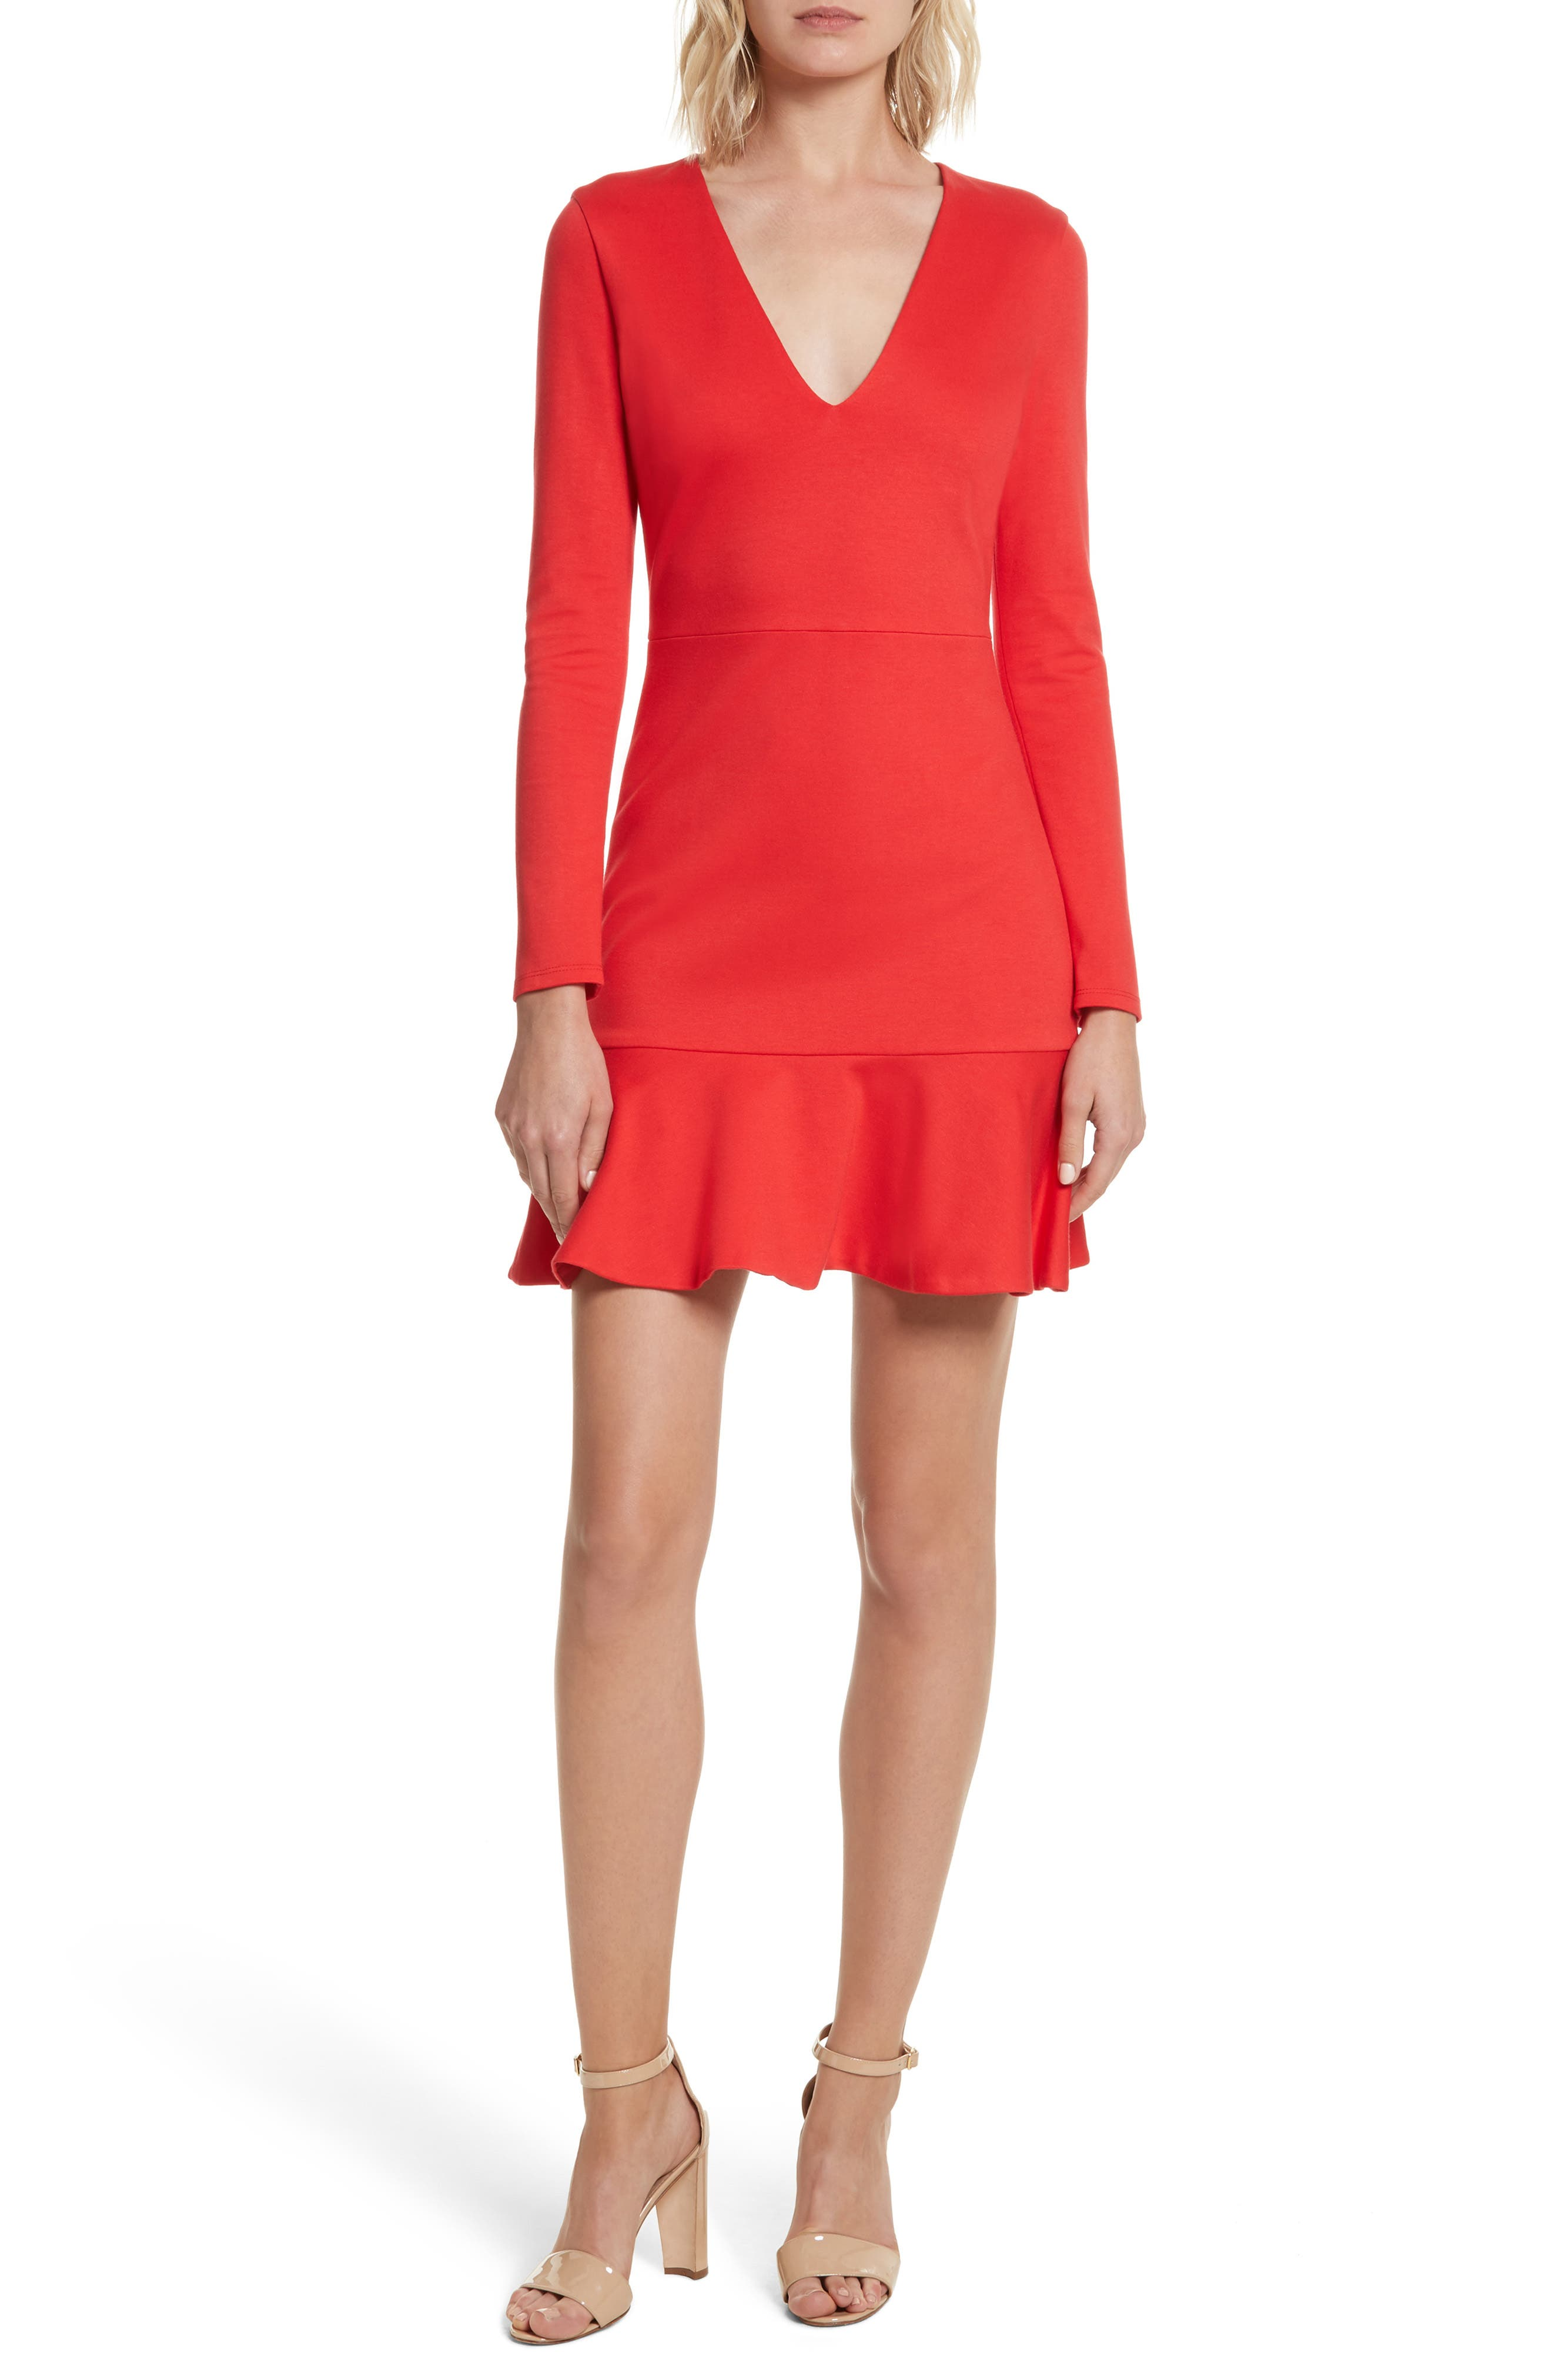 Alice + Olivia Francine Ruffle Hem Fit & Flare Dress